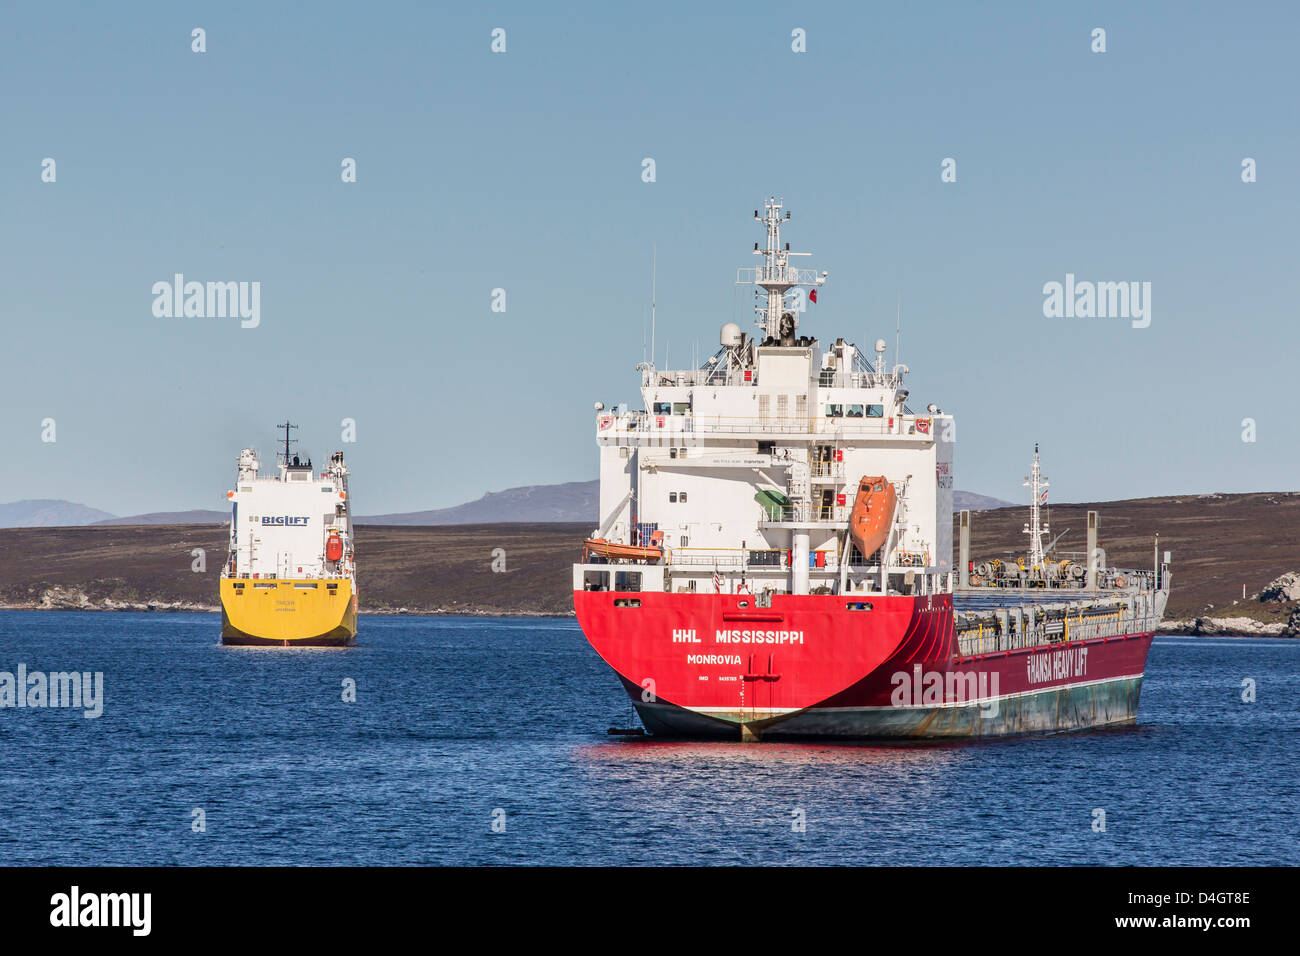 Commercial container ship in the port of Stanley, East Falkland Island, South Atlantic Ocean, South America - Stock Image